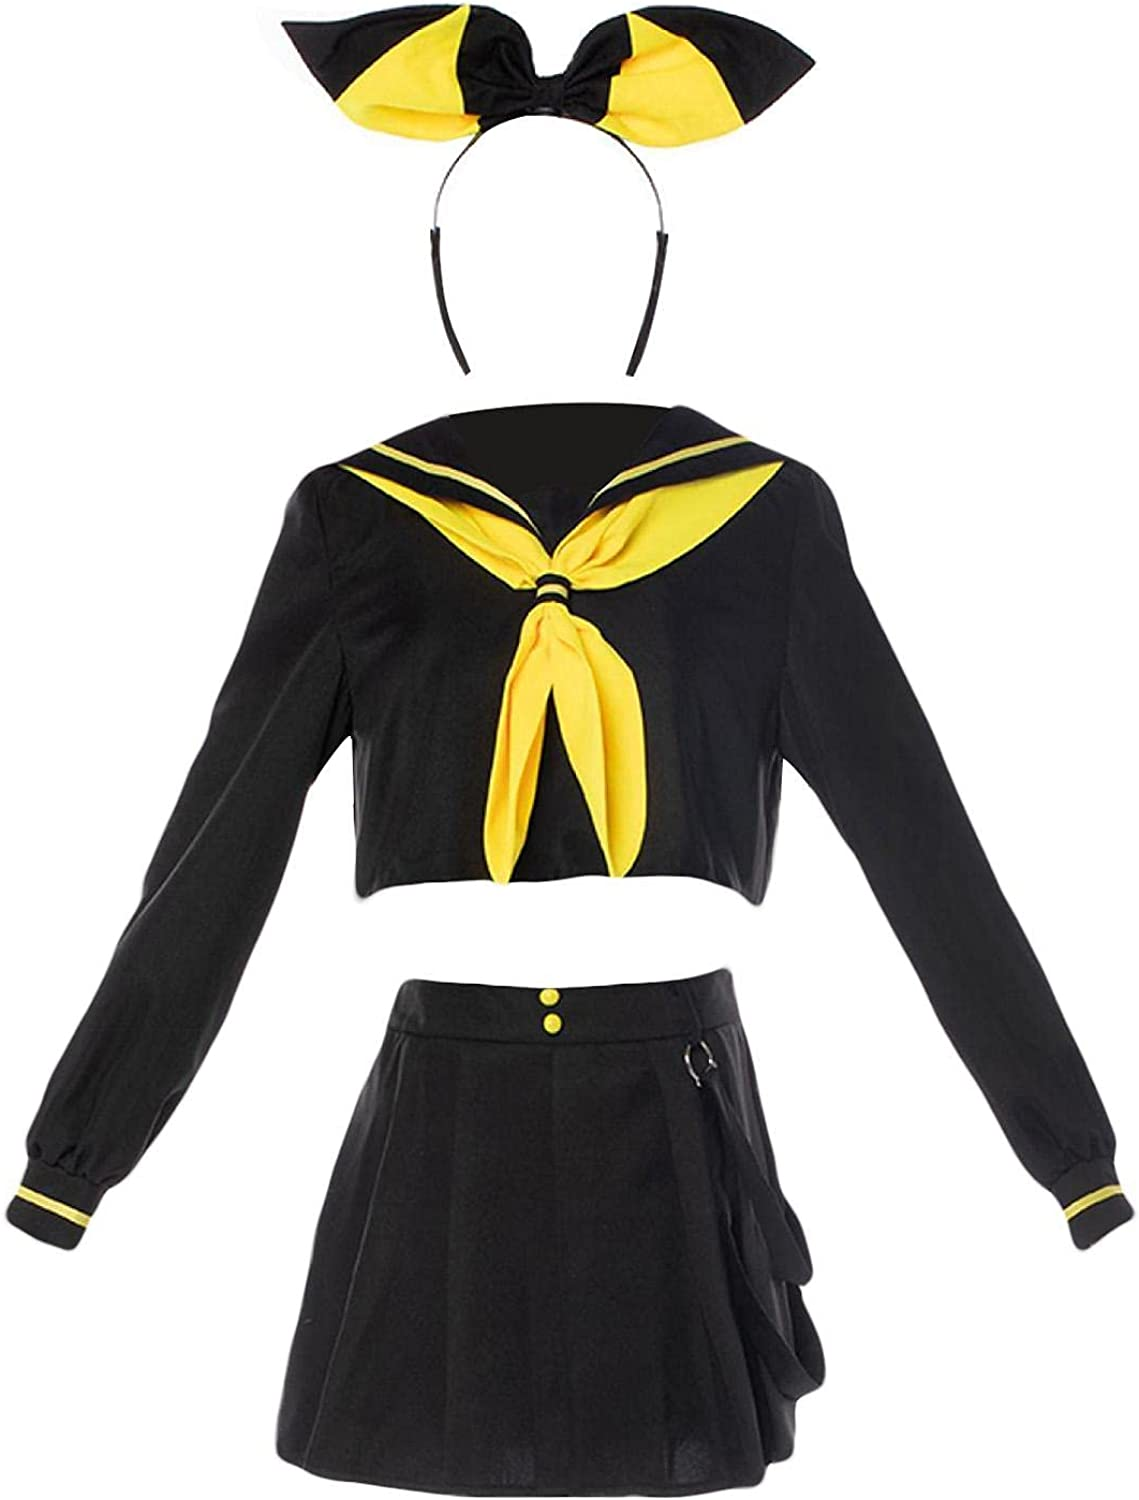 Halloween Cosplay Costume for Anime Rin Ri Kagamine Len Outlet ☆ Max 75% OFF Free Shipping